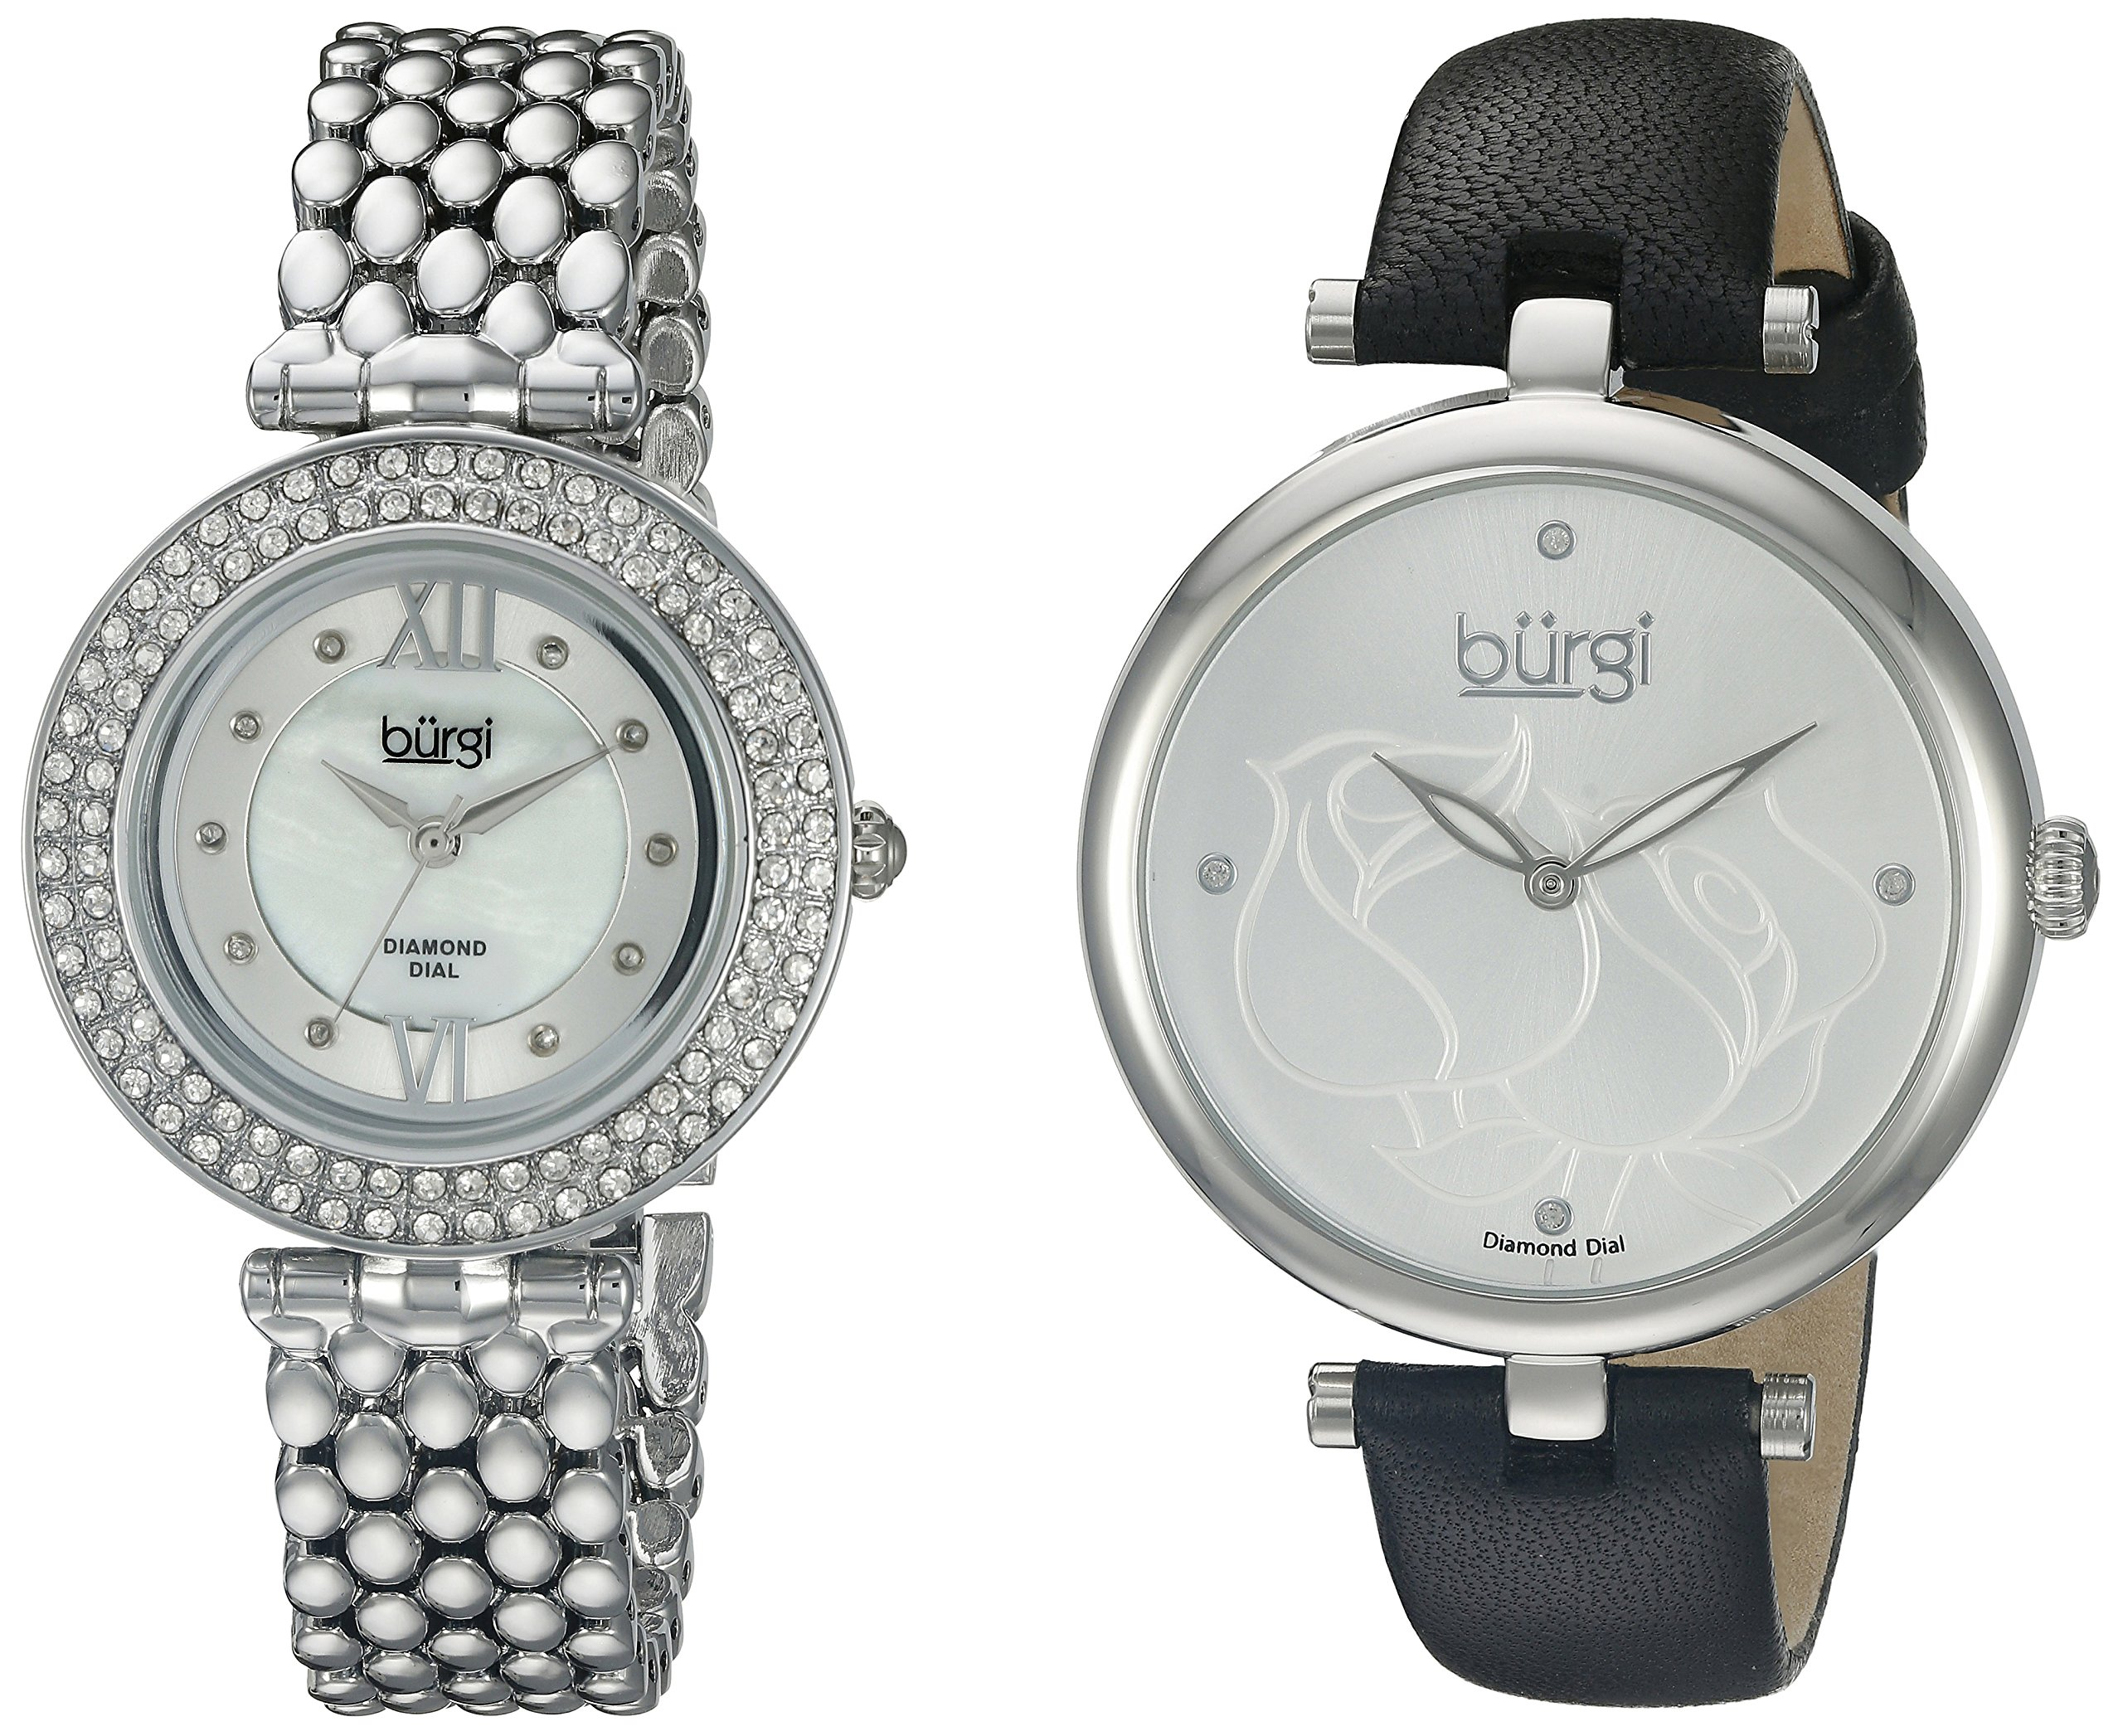 Burgi Women's 2 Watch Set 1 Every Day Rose Etched Flower Watch On Leather Band 1 Classy Crystal Watch On Stainless Steel Band - BUR152